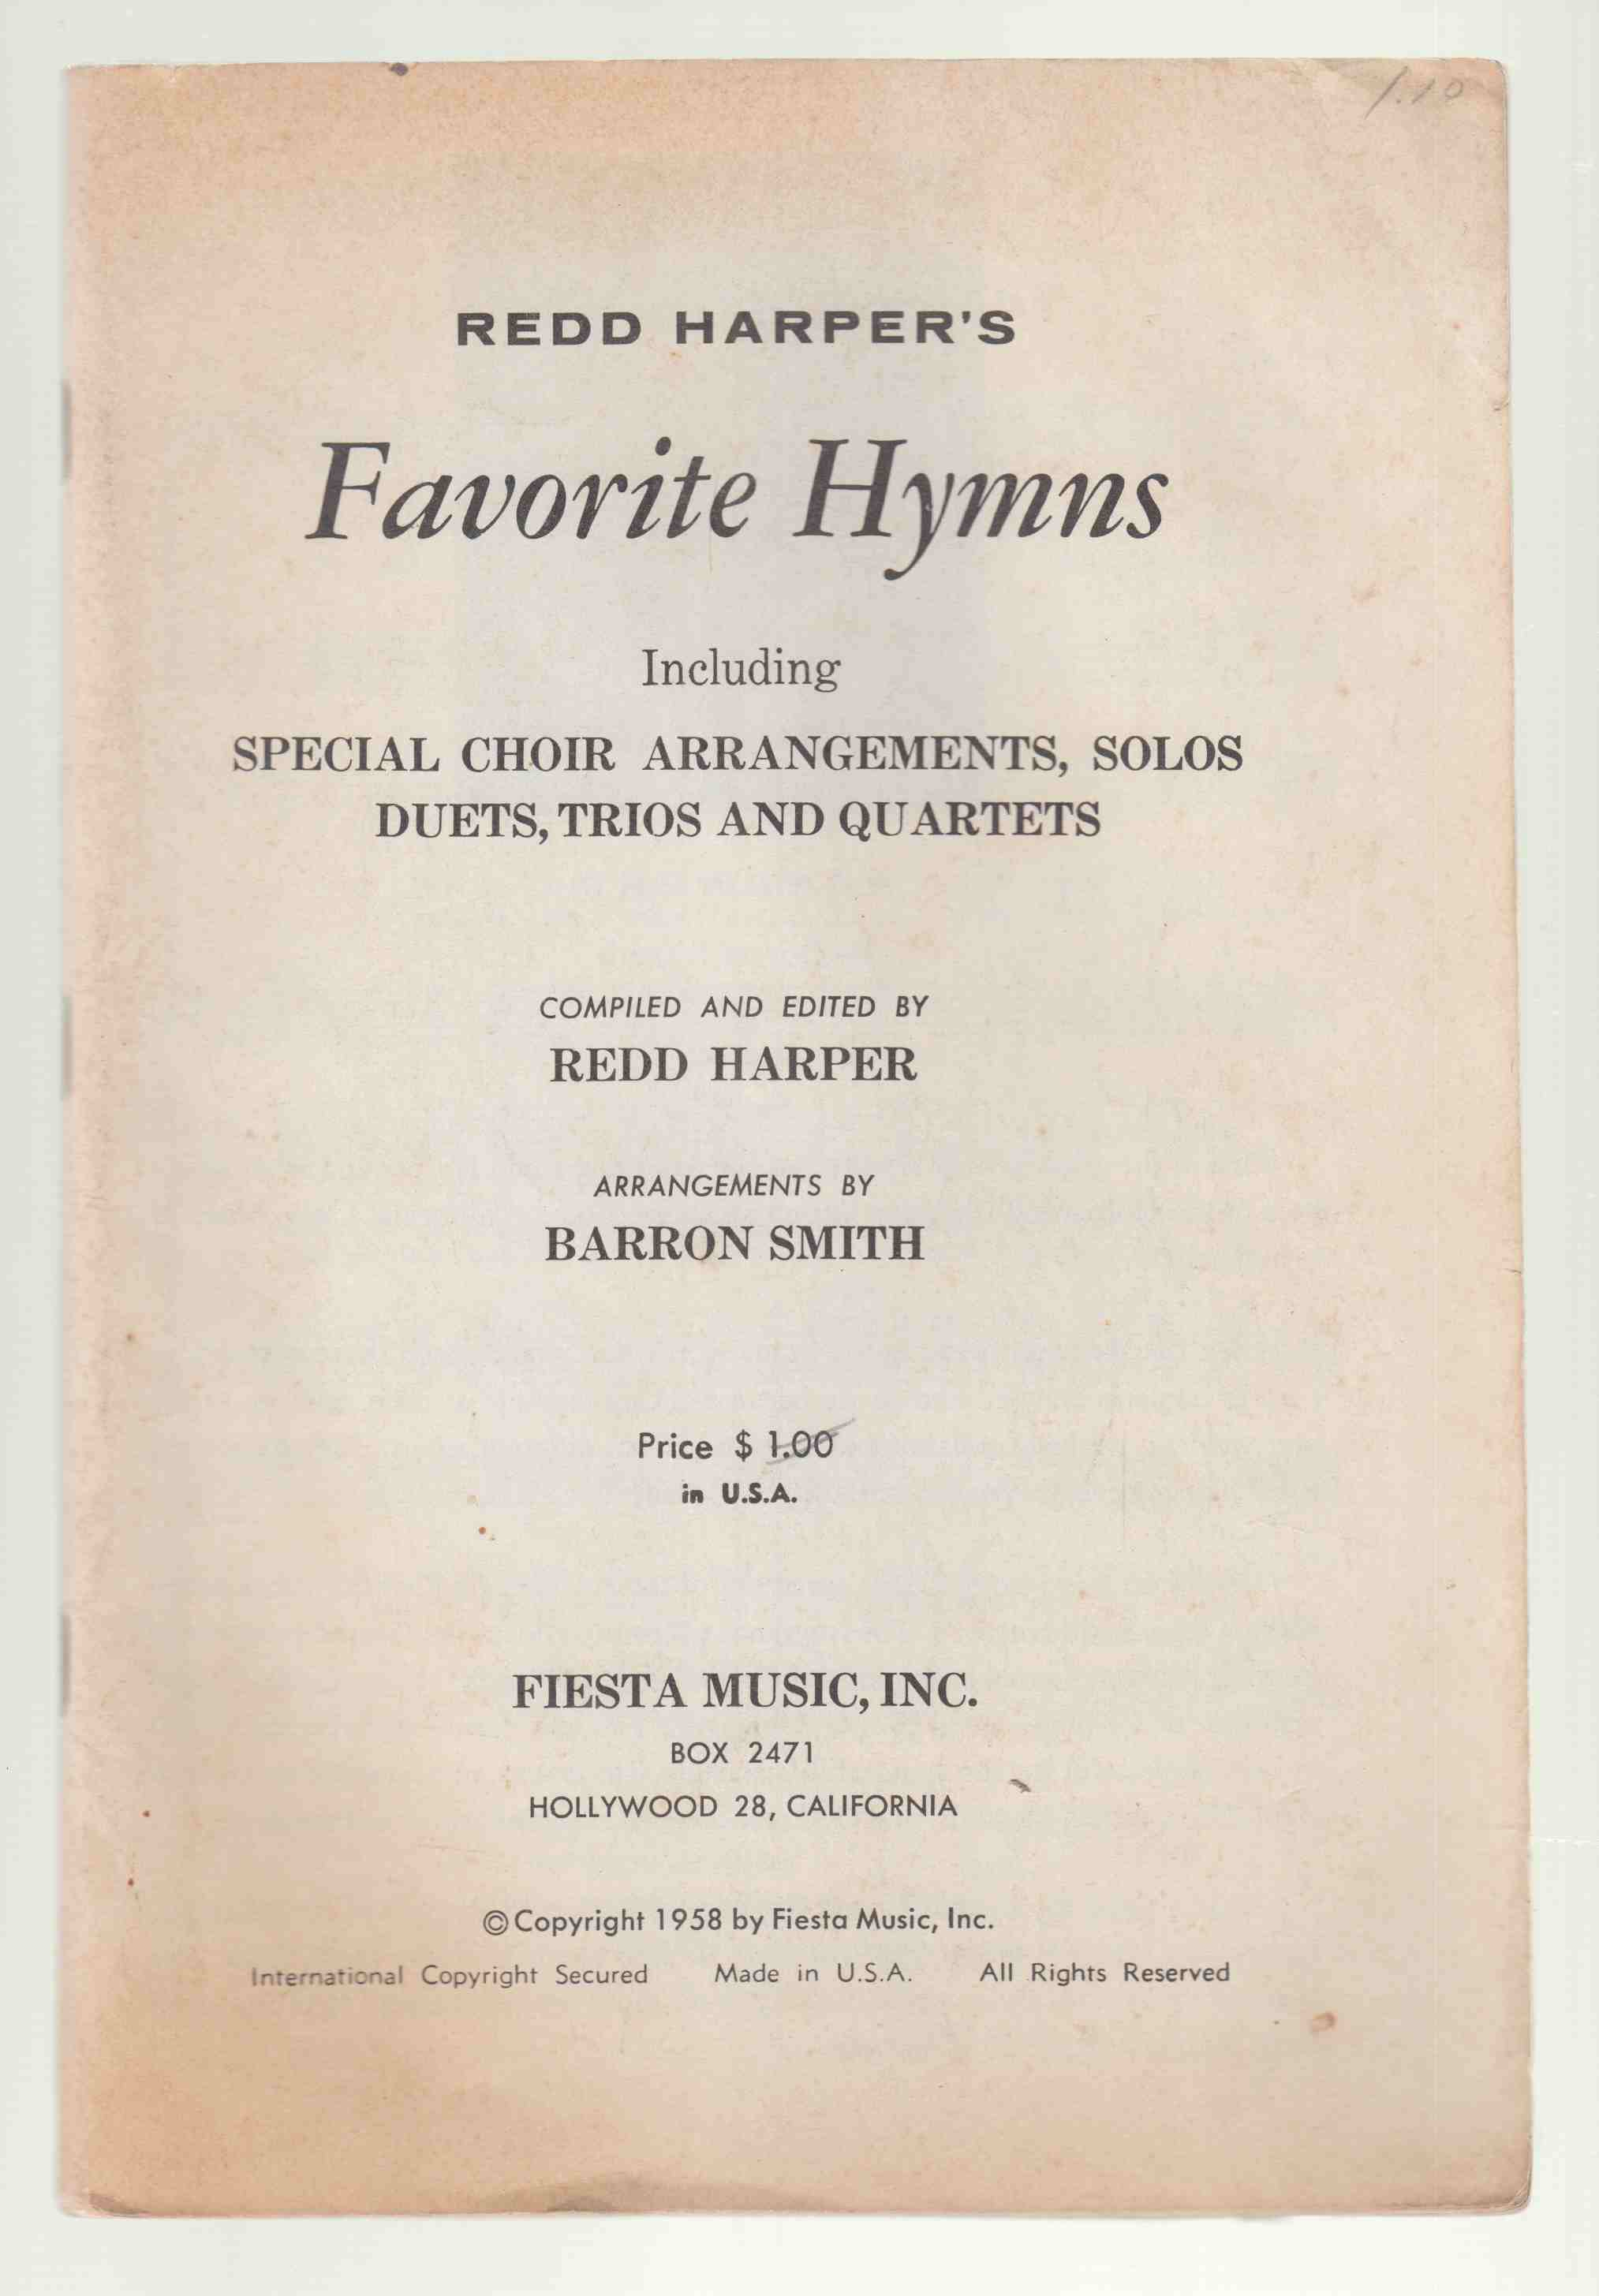 Image for Redd Harper's Favourite Hymns Including Special Choir Arrangements, Solos, Duets, Trios and Quartets